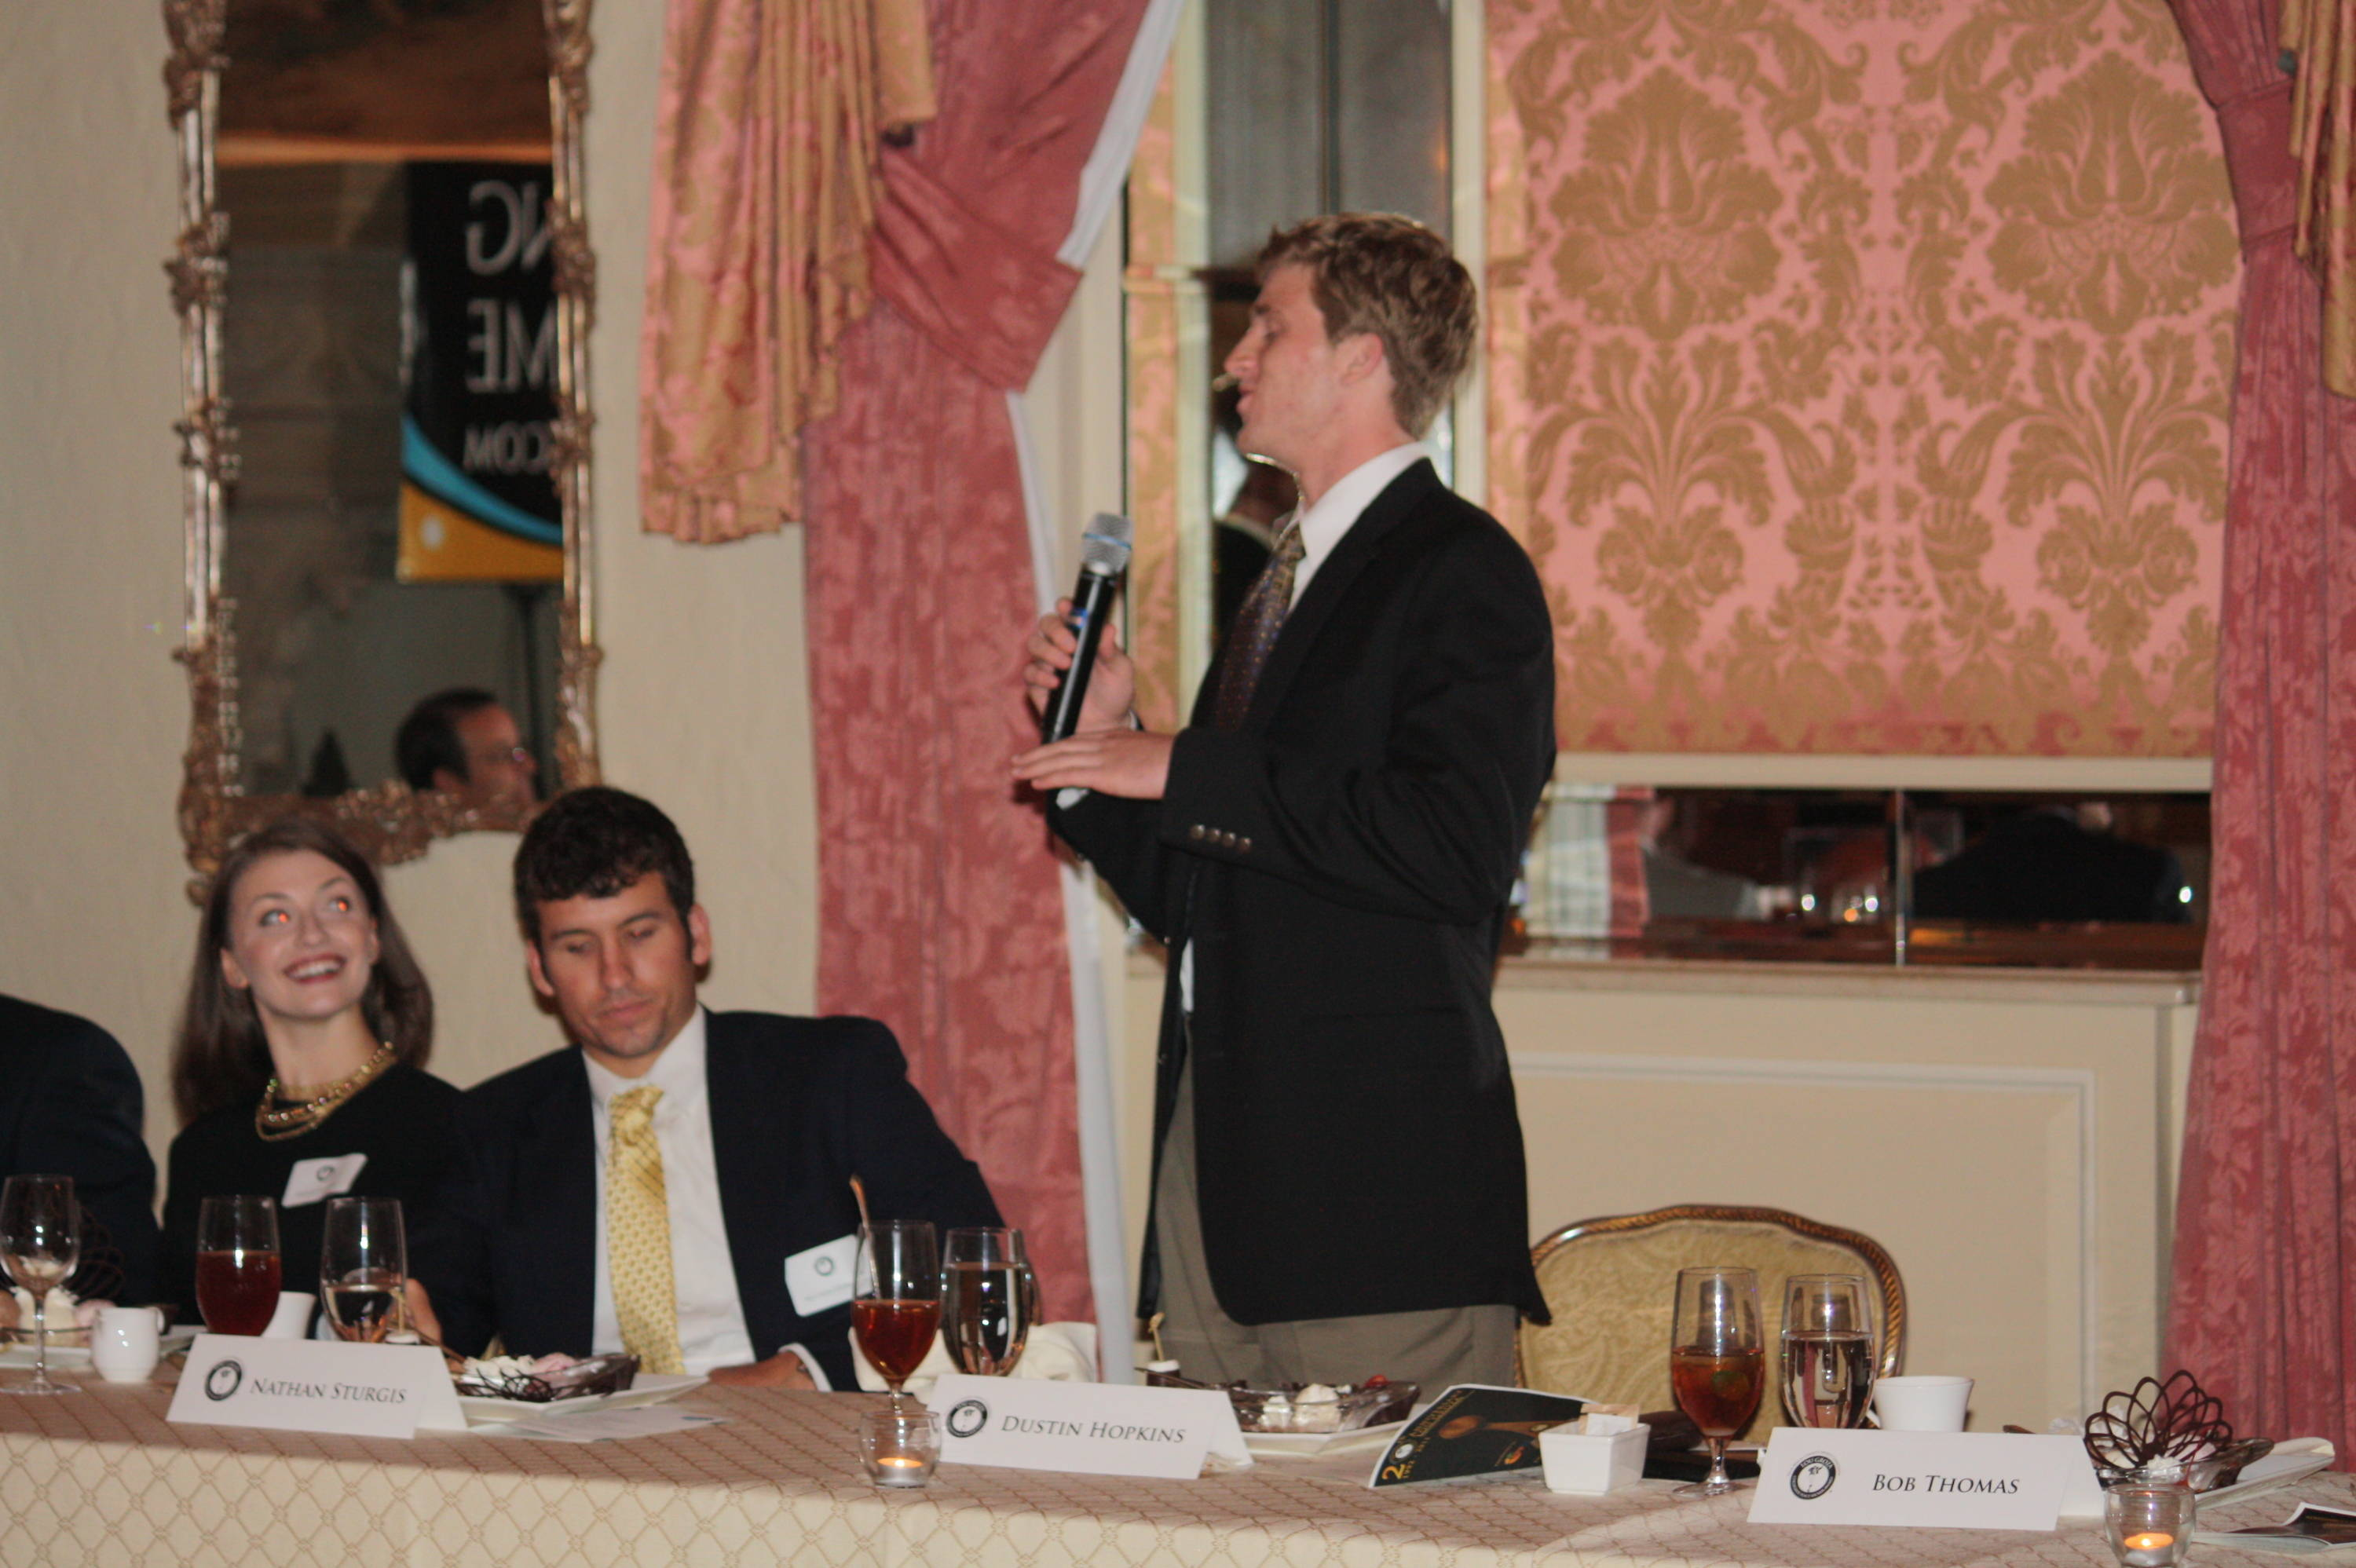 Dustin answers a few questions during Monday night's dinner at the famed Breakers in West Palm Beach.